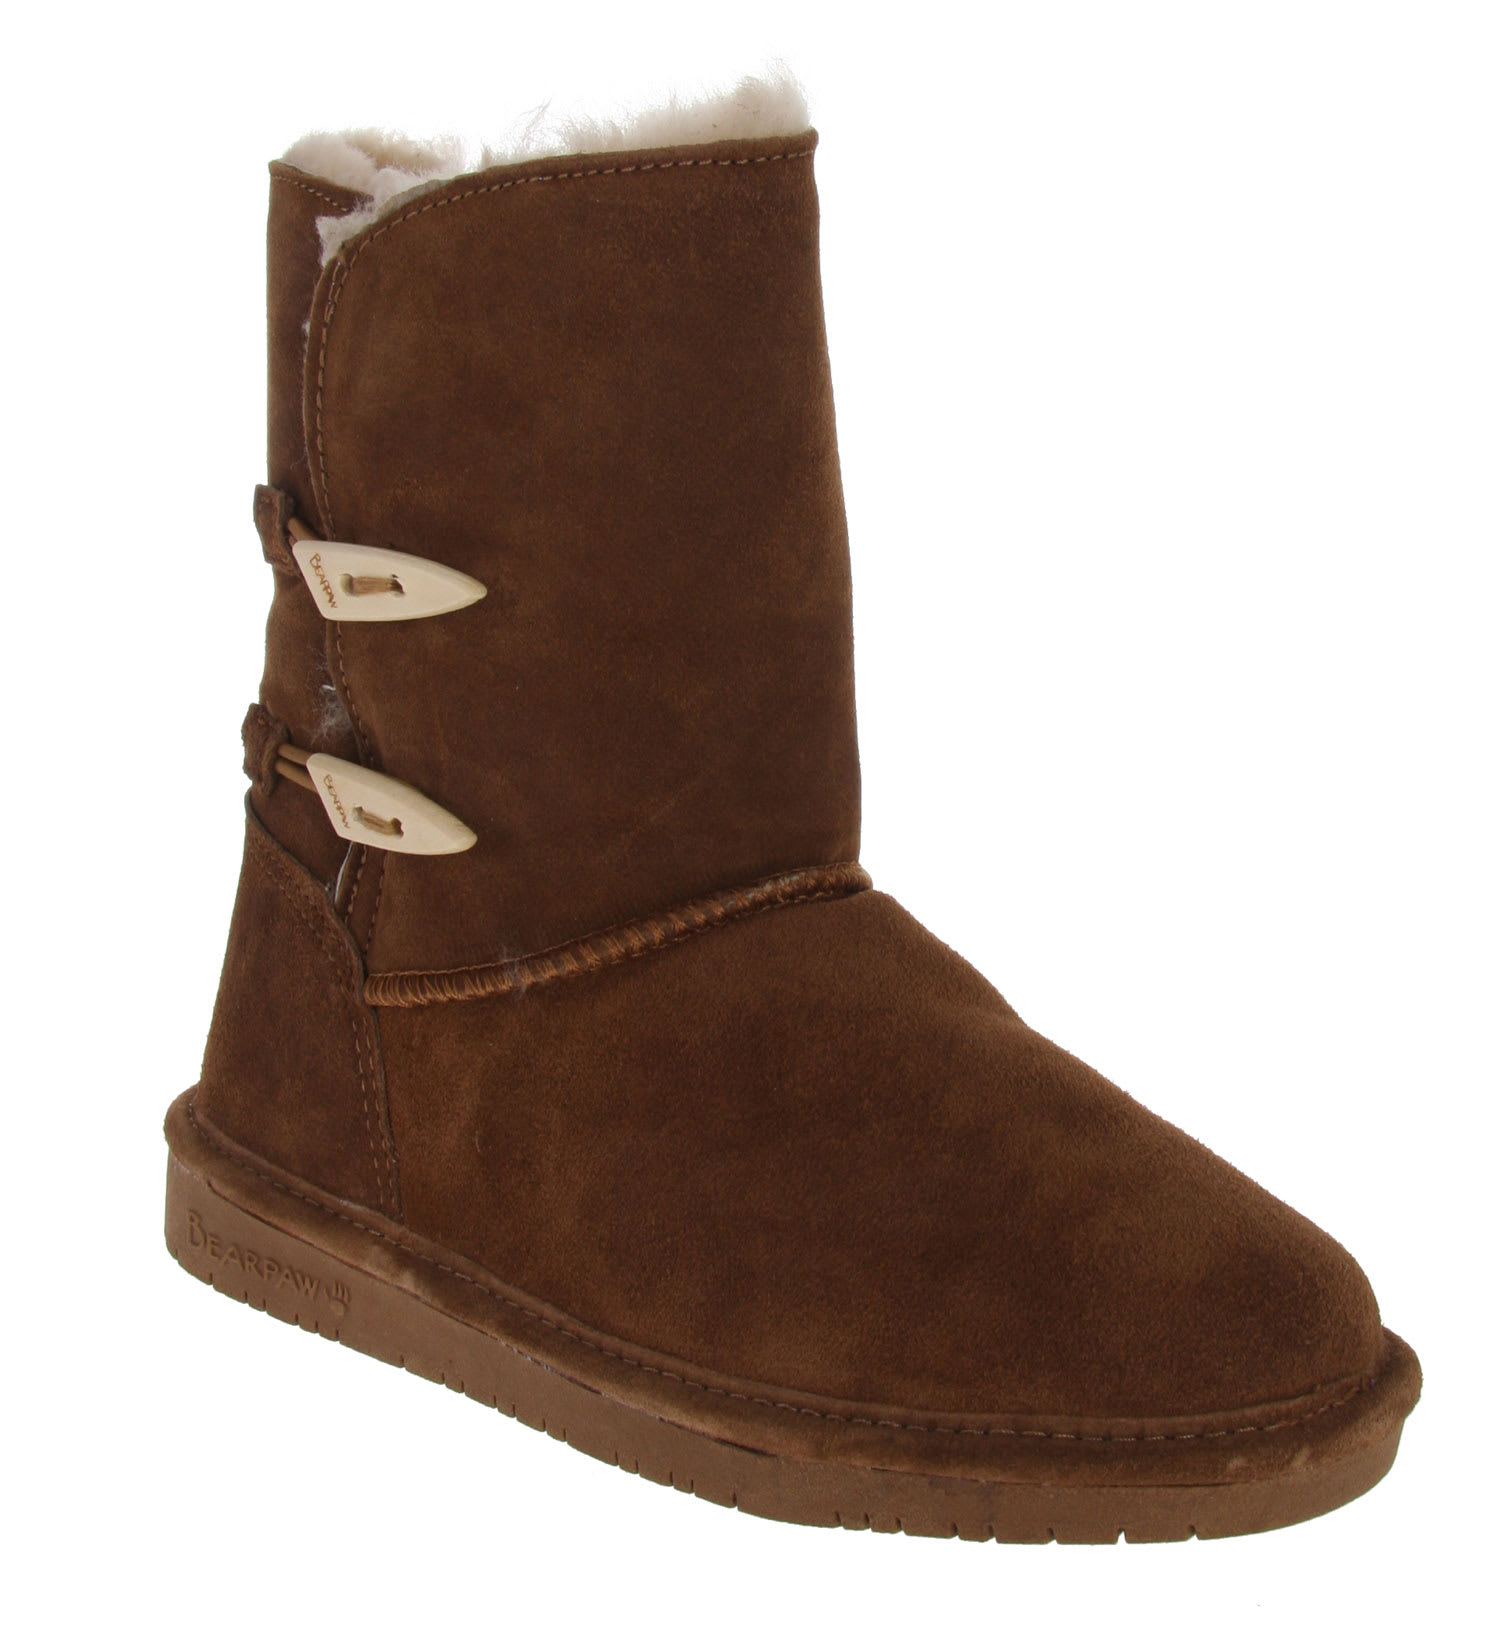 Bearpaw Womens Boots Sale: Save Up to 60% Off! Shop cristacarbo2wl55op.ga's huge selection of Bearpaw Boots for Women - Over 50 styles available. FREE Shipping & Exchanges, and a % price guarantee!